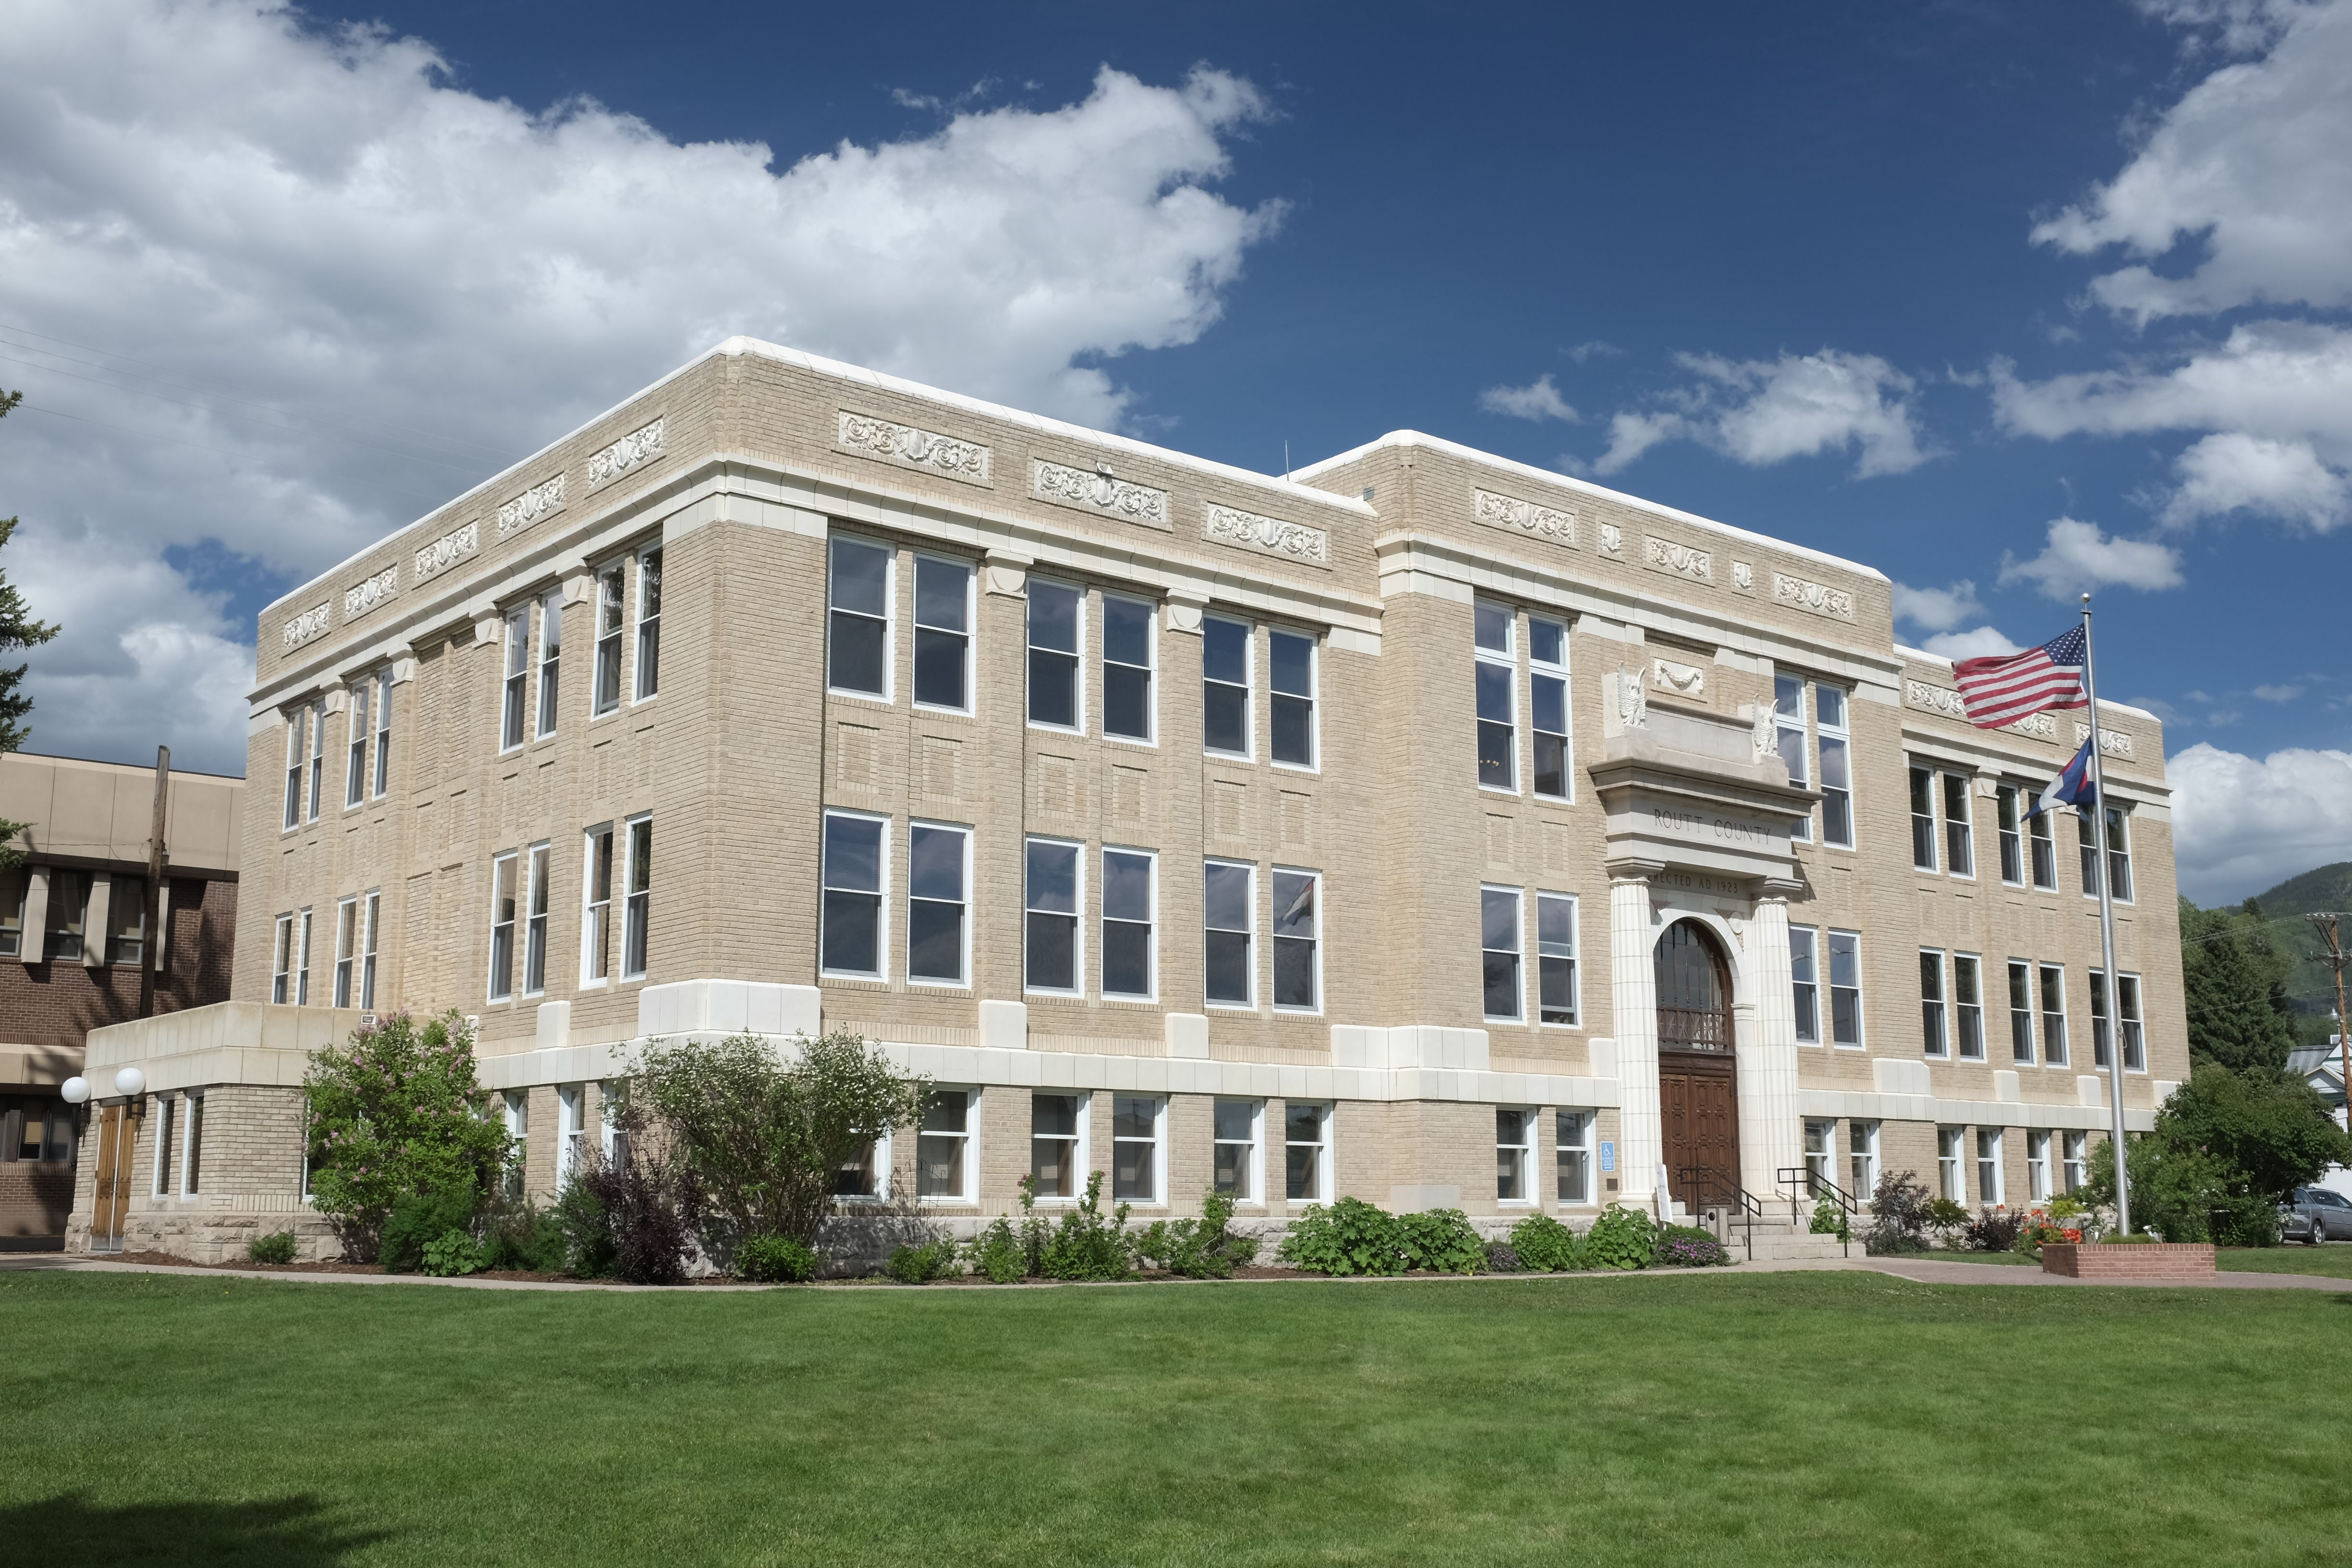 :Routt County Courthouse, Steamboat Springs, Colorado